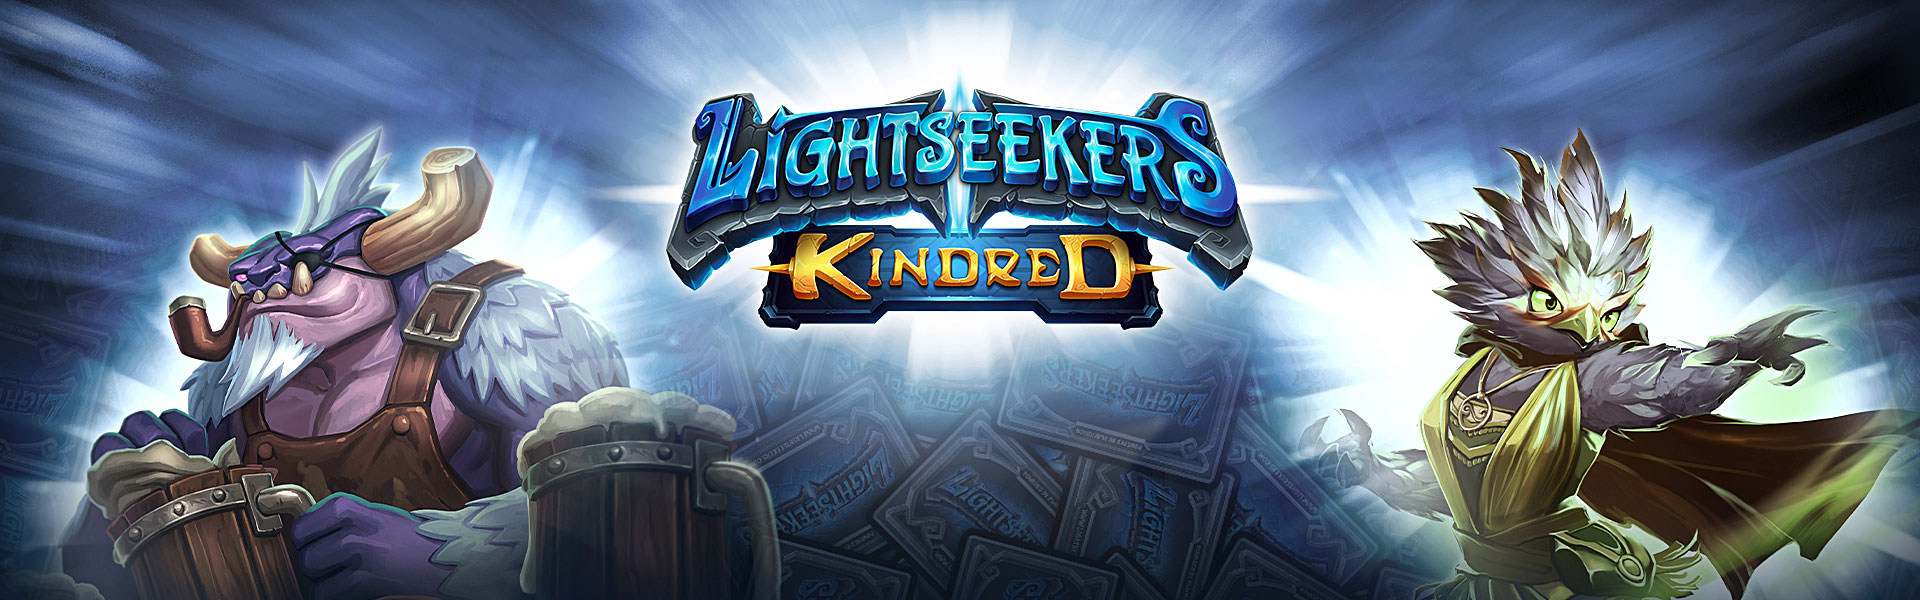 Lightseekers - Kindred